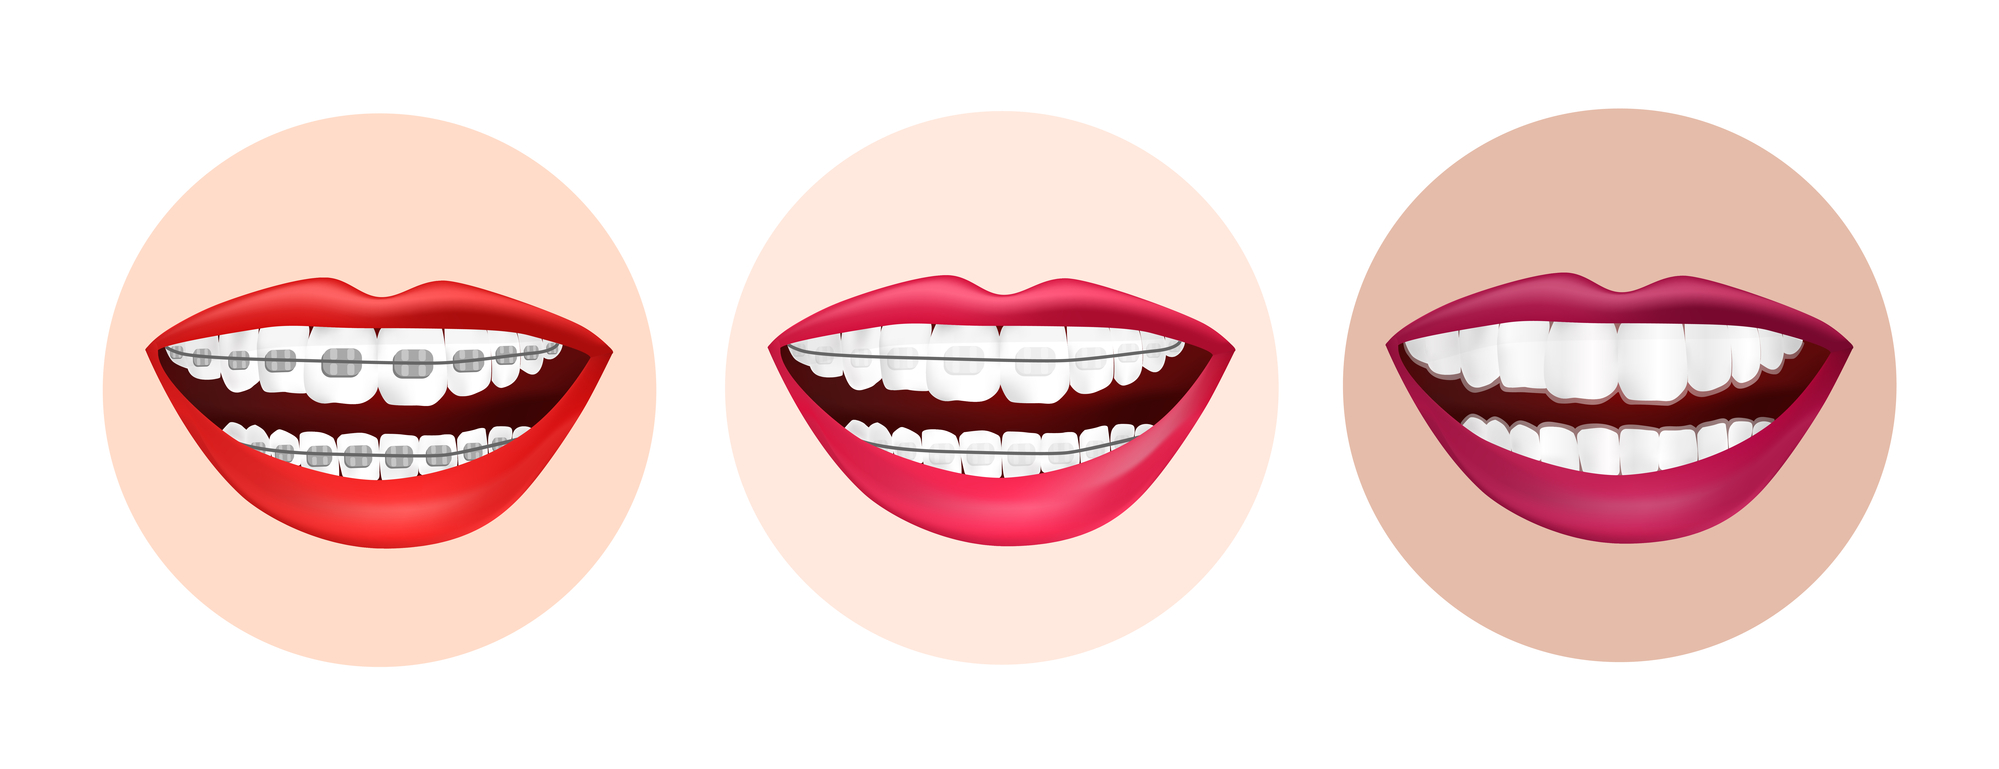 image of mouth with traditional braces, clear braces, and clear aligners